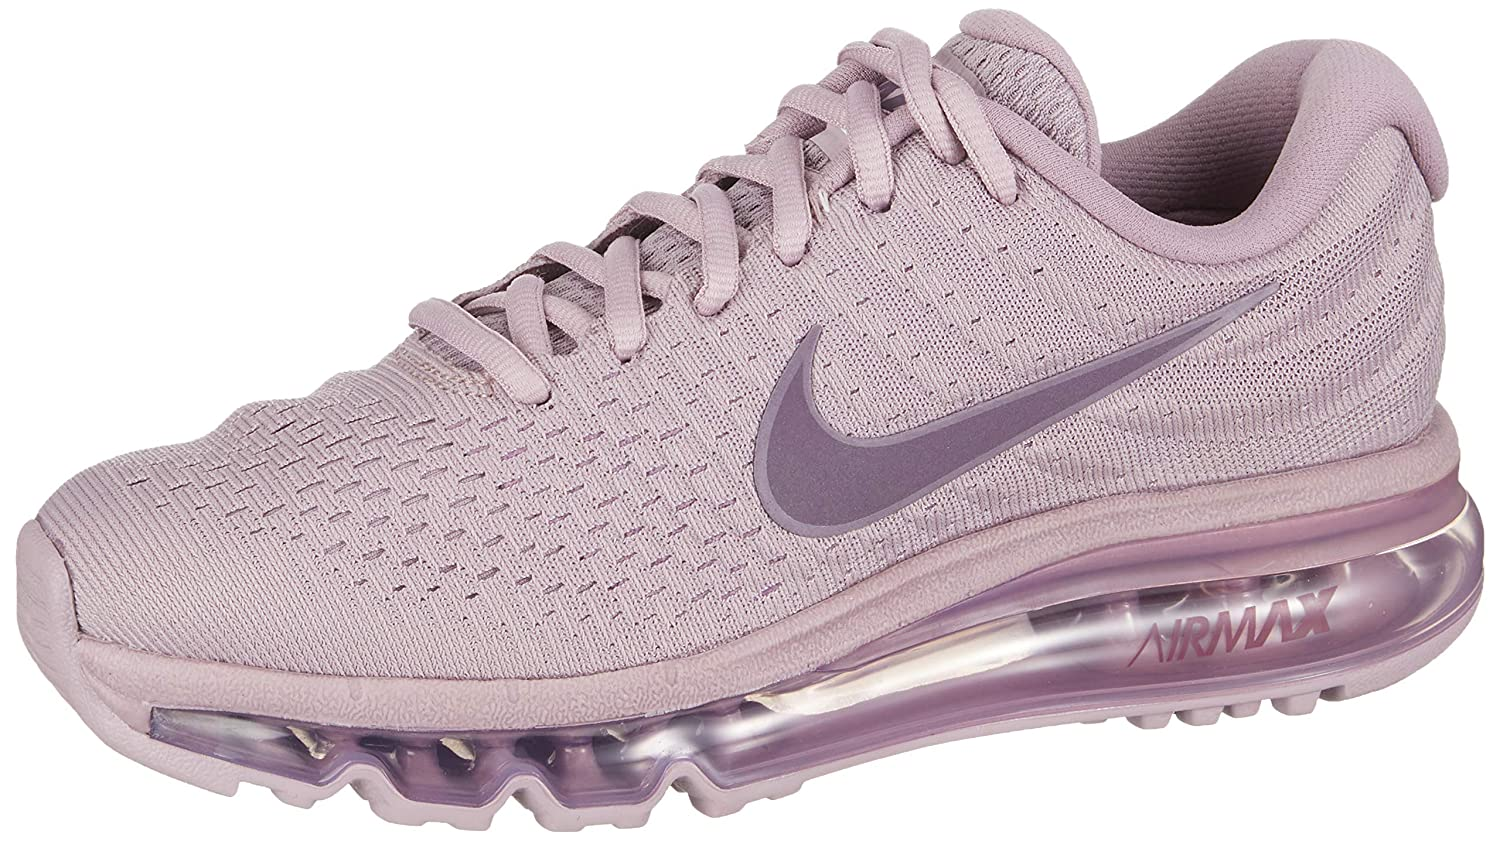 Nike WMNS Air Max 2017 Color: Pink Size: 9.5US